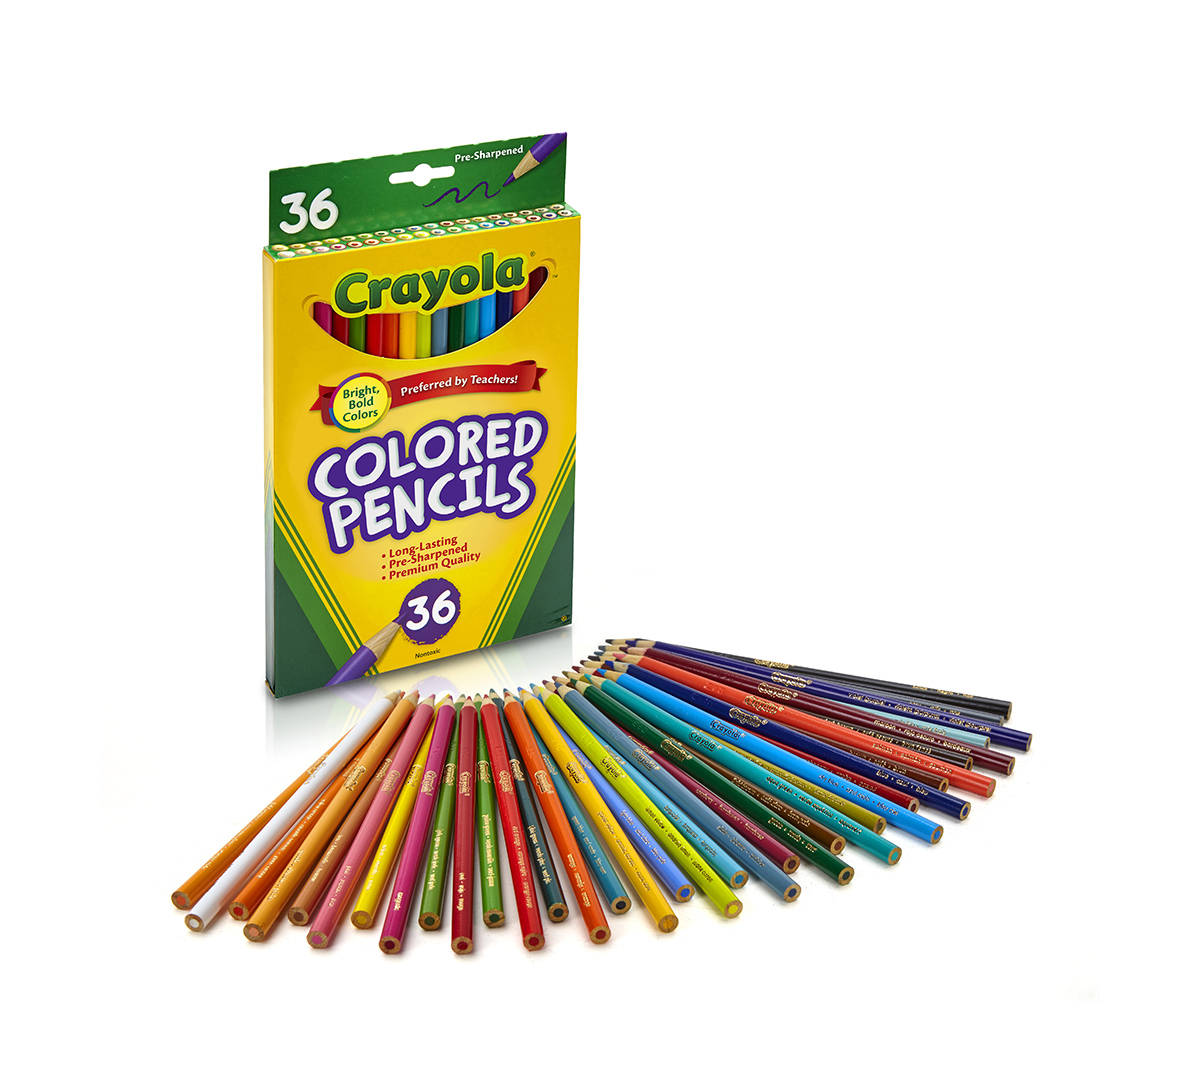 Colored Pencils, 36ct Coloring Set | Crayola.com | Crayola